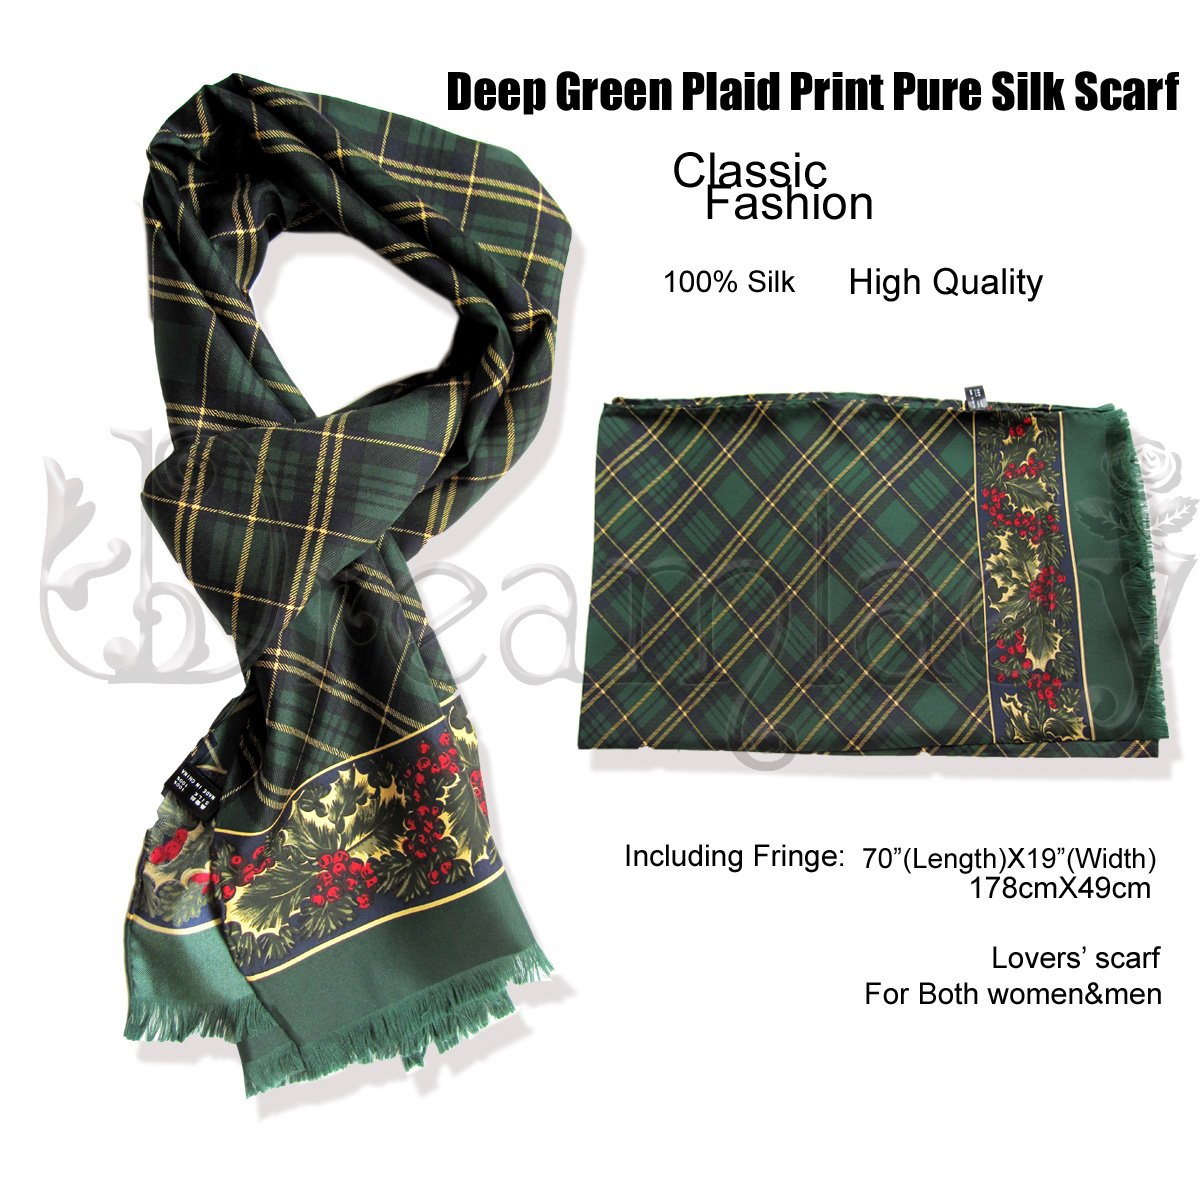 Fantastic Vintage Deep Green Unisex Plaid Print Pure Silk Scarf/Shawl